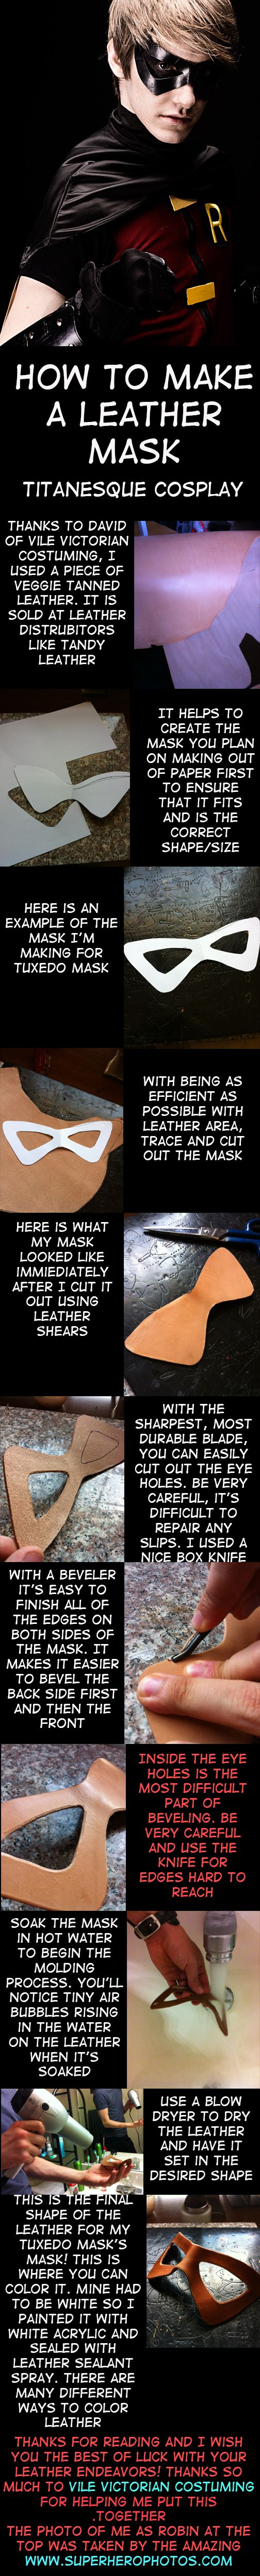 nike air jordan retro 11 low price Leather Mask Tutorial by TitanesqueCosplay deviantart com on  deviantART